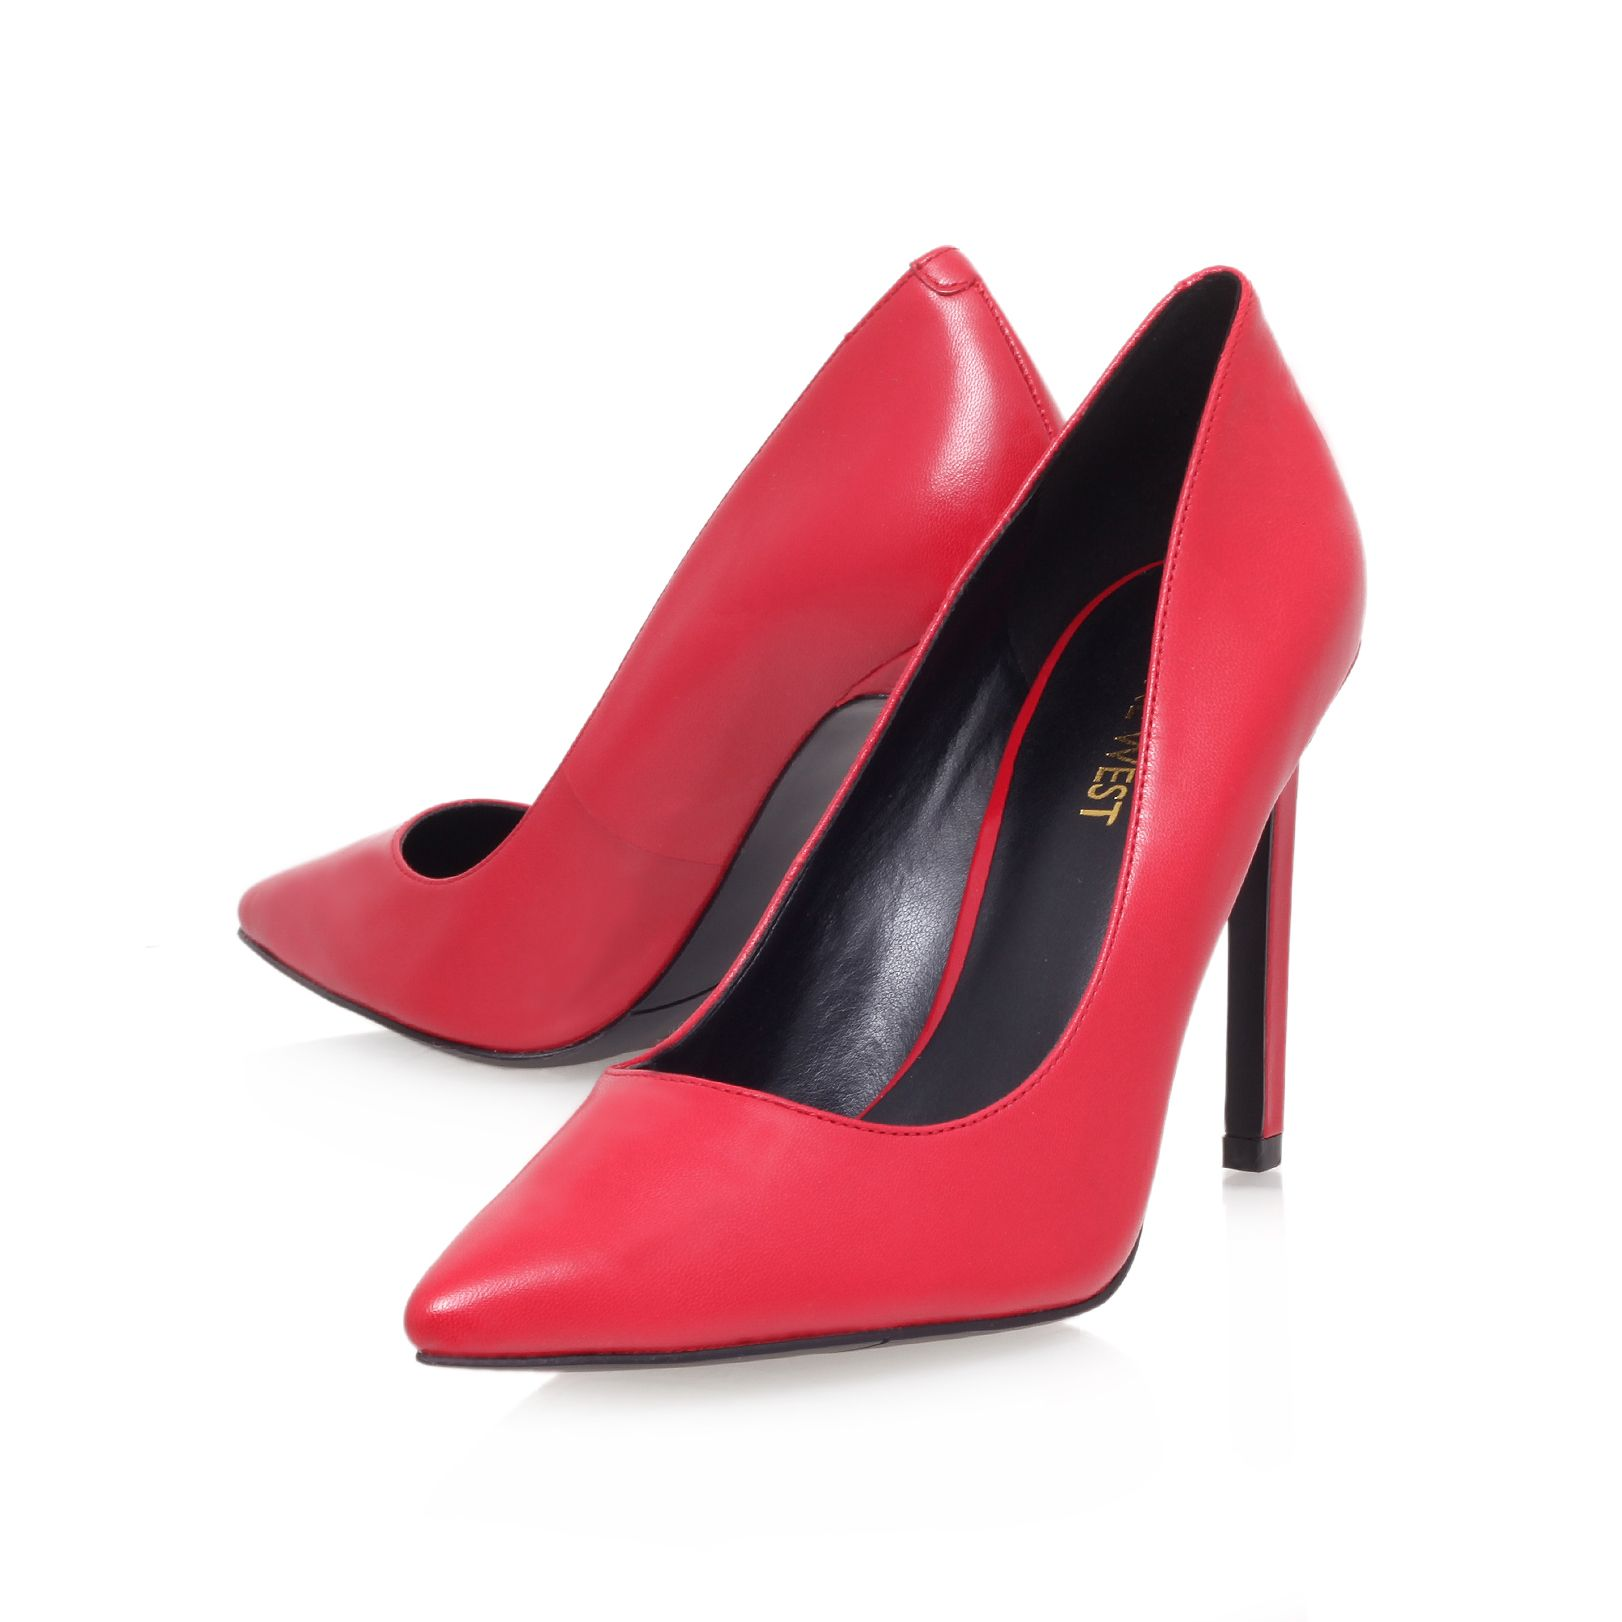 Tatiana high heel court shoes